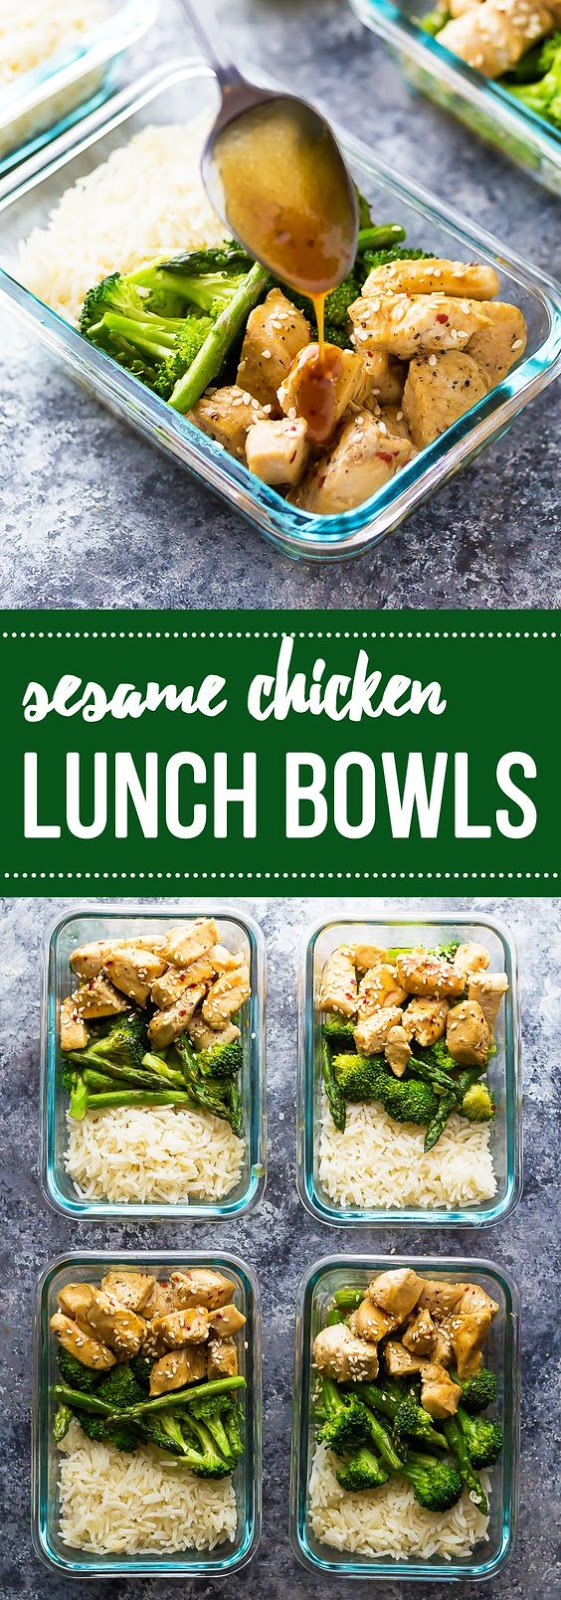 Honey Sesame Chicken Lunch Bowls #honey #sesame #chicken #chickenrecipes #lunch #lunchrecipes #bowls #easylunchrecipes